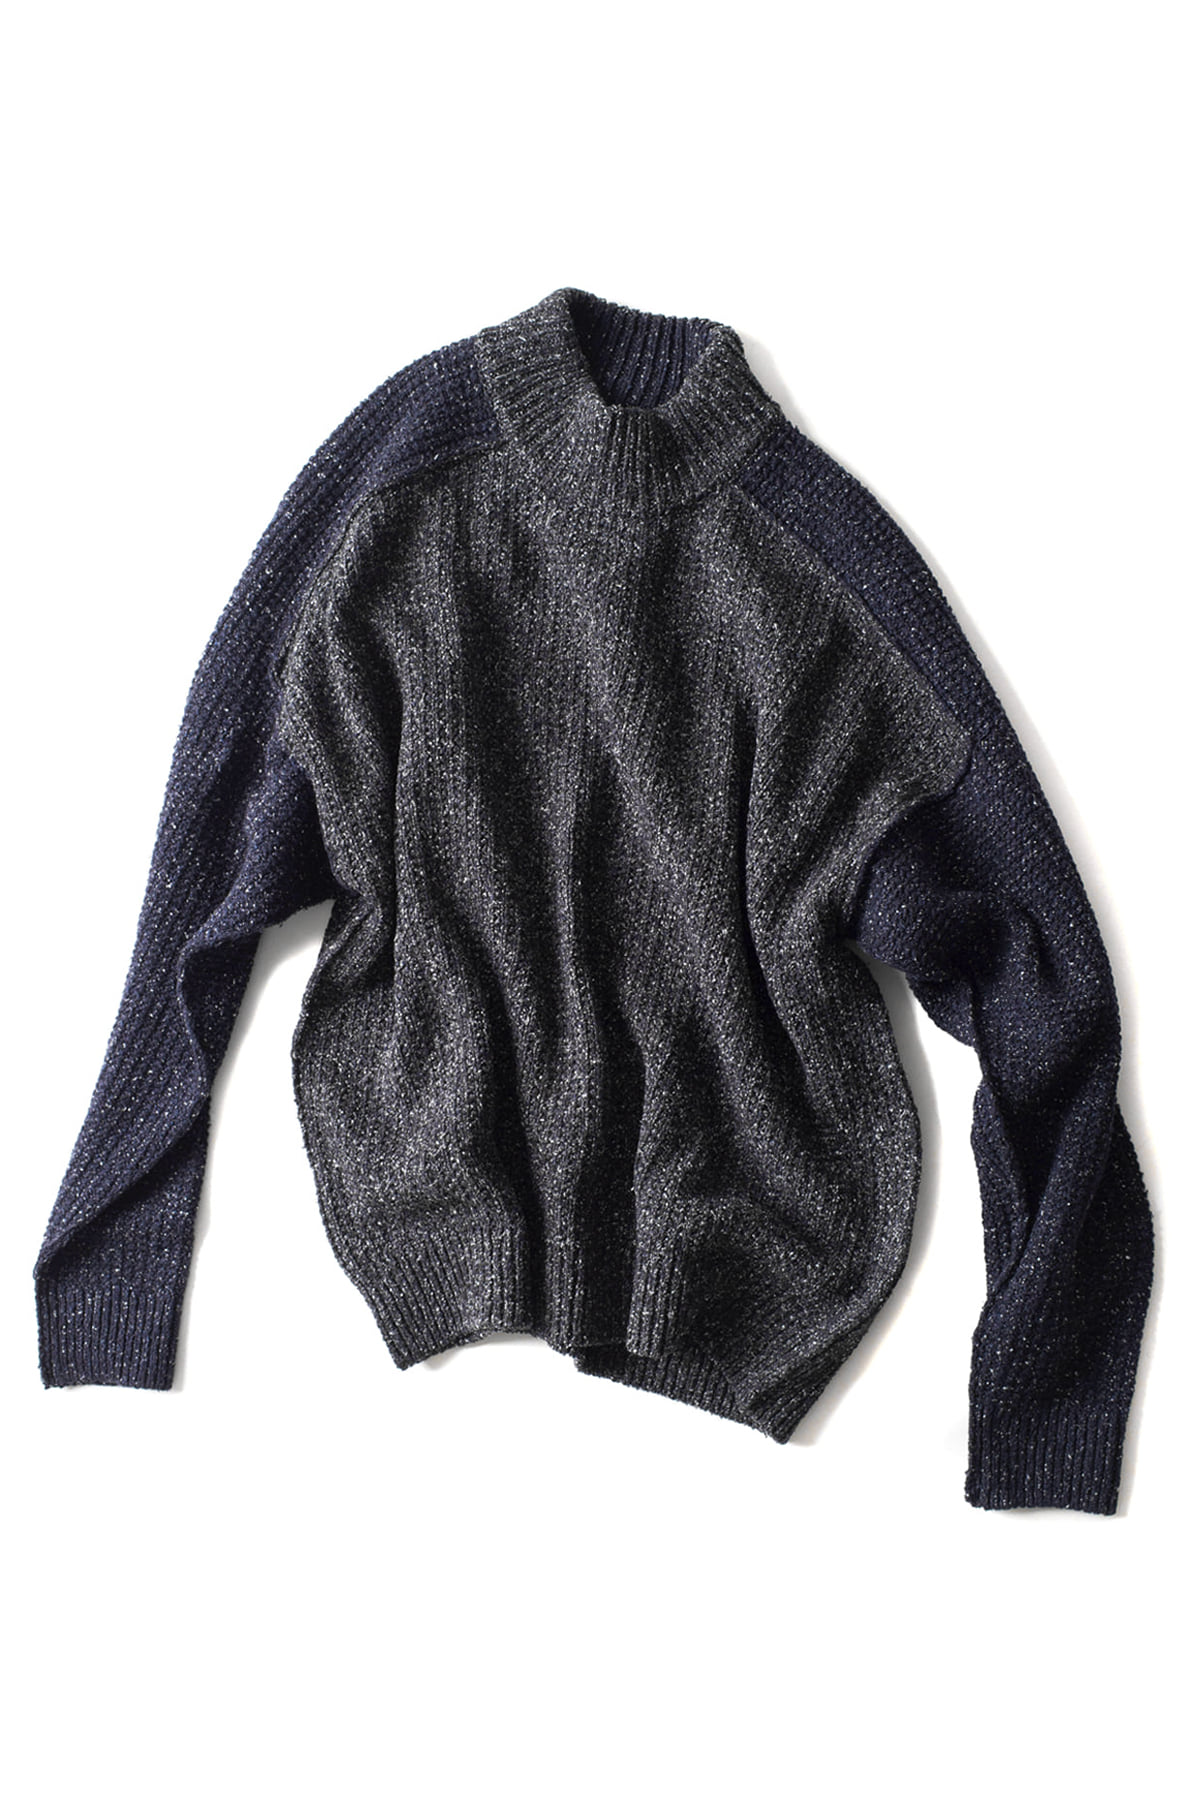 WRAPINKNOT : Raw Silk Reversible Knit (Grey)